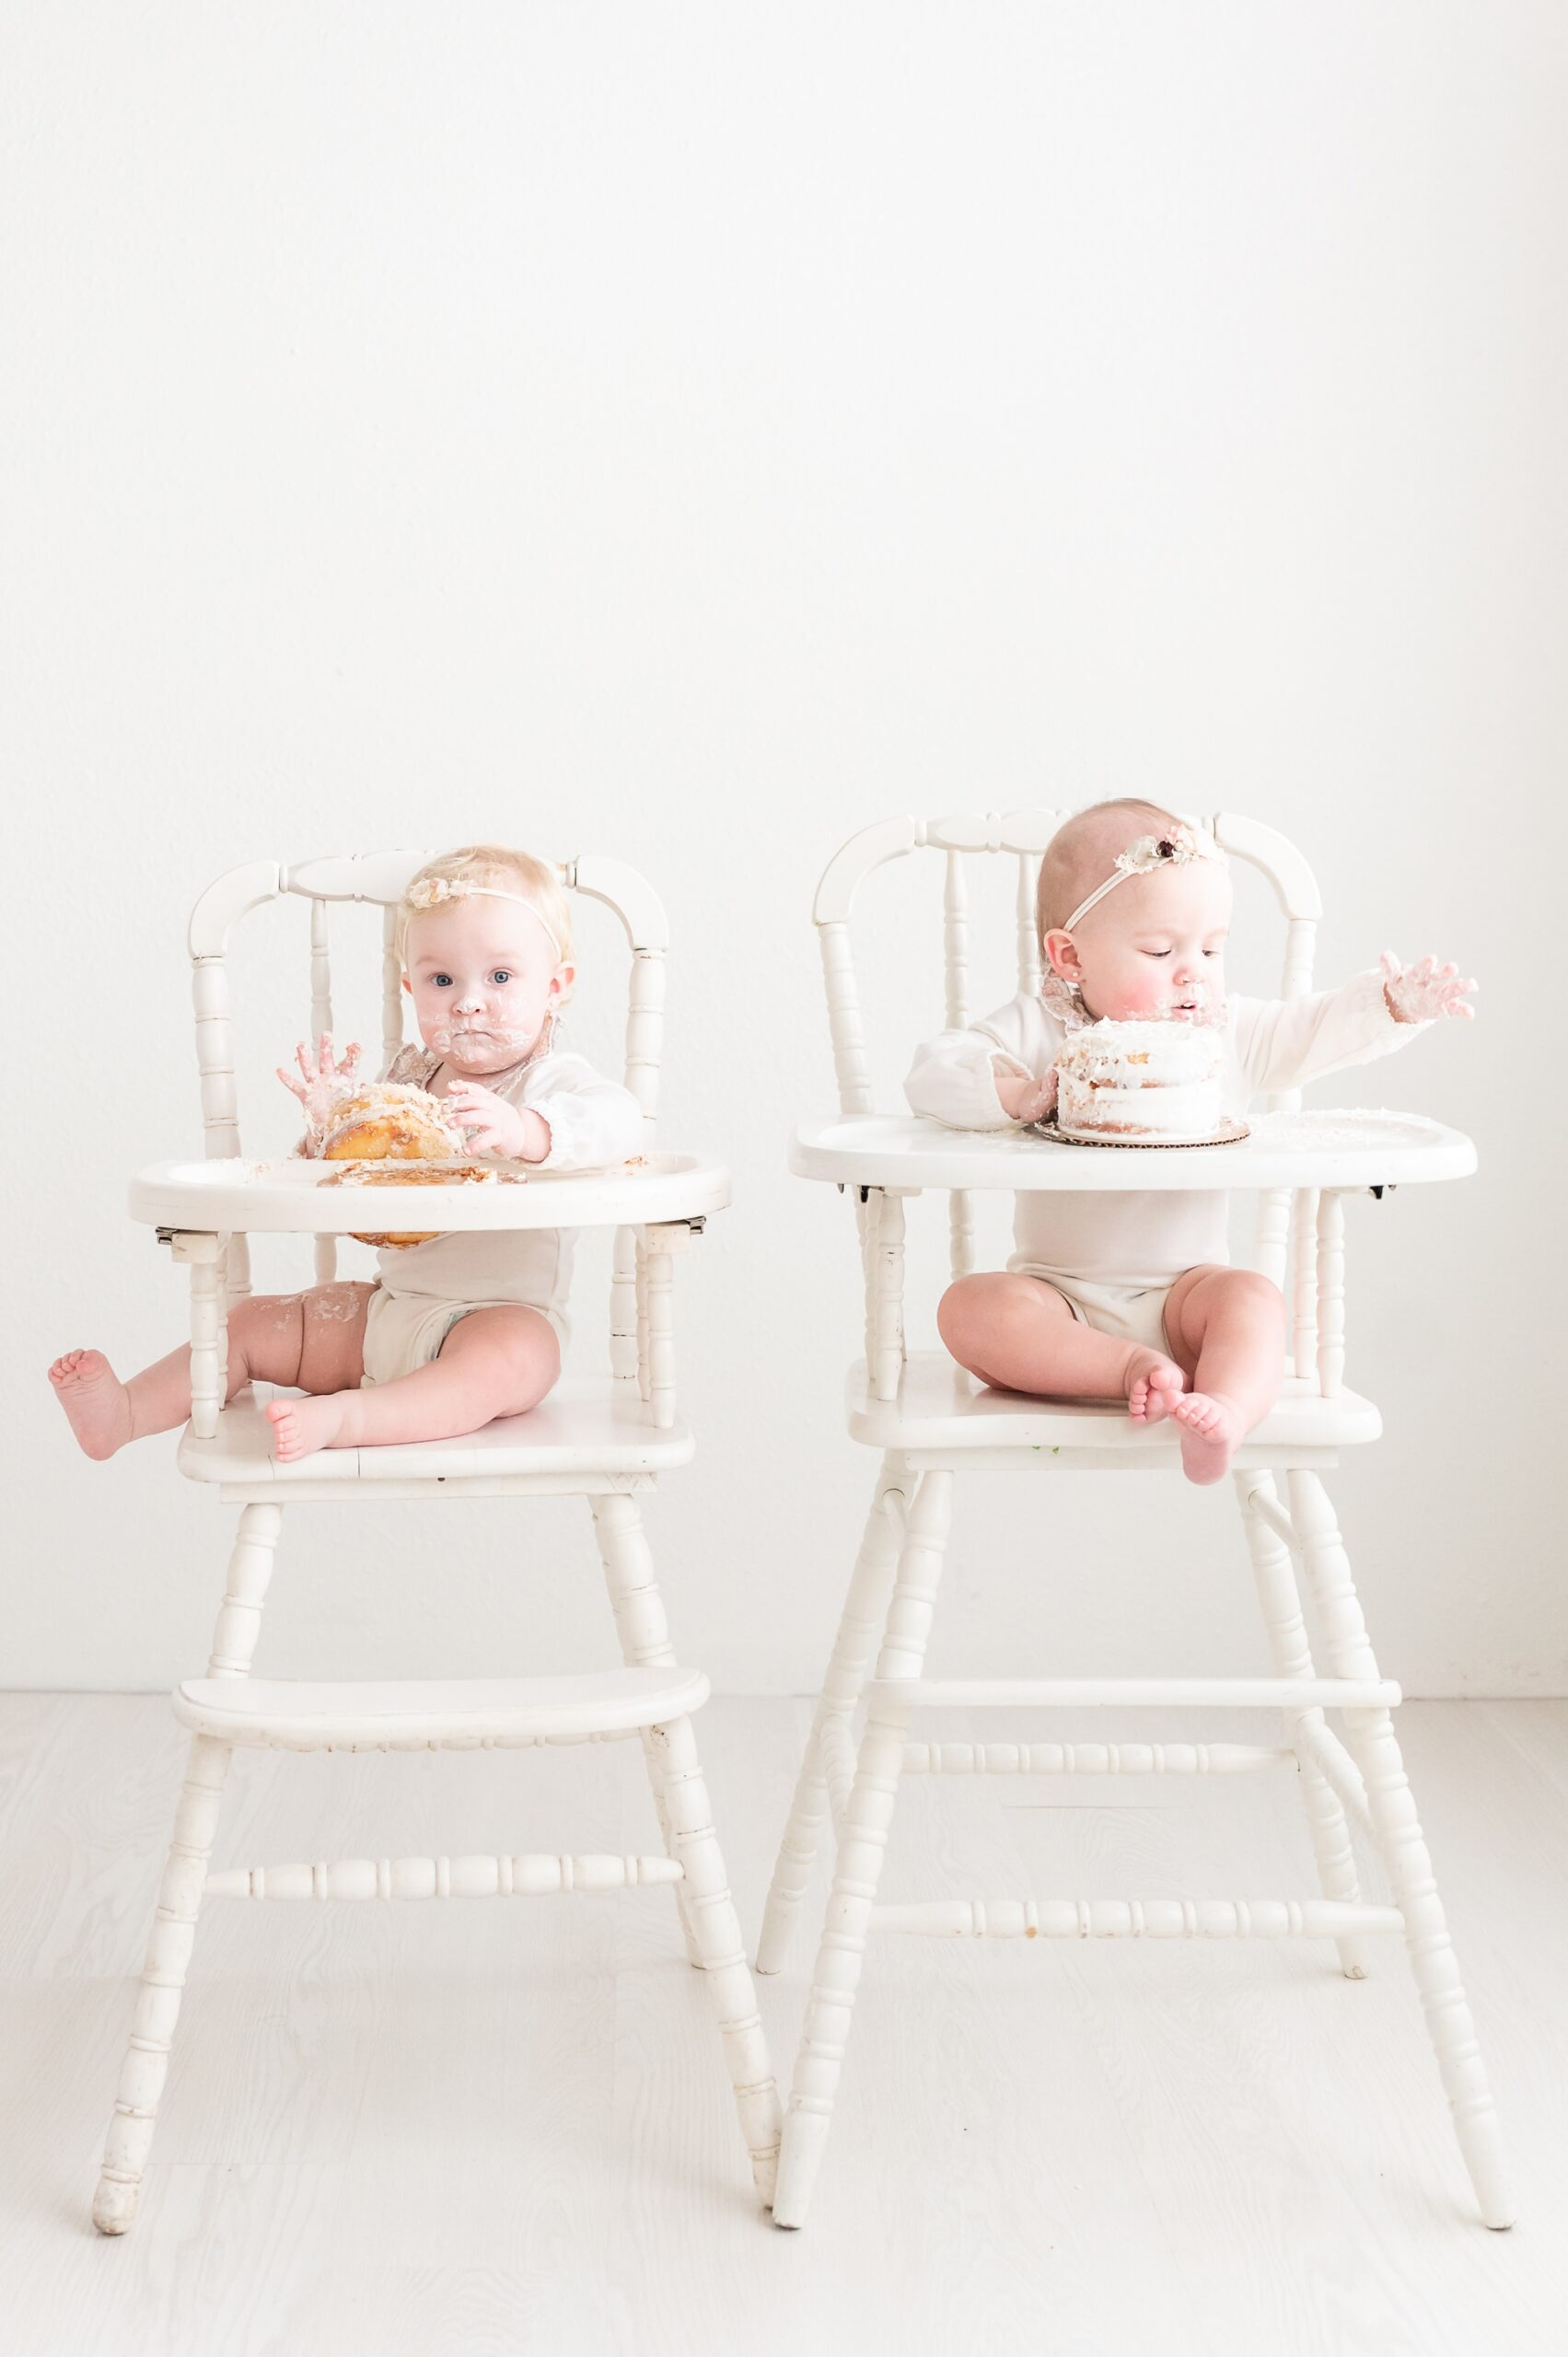 Twin cake smash session with girls in white wooden highchairs. Photo by Dallas studio baby photographer, Aimee Hamilton Photography.